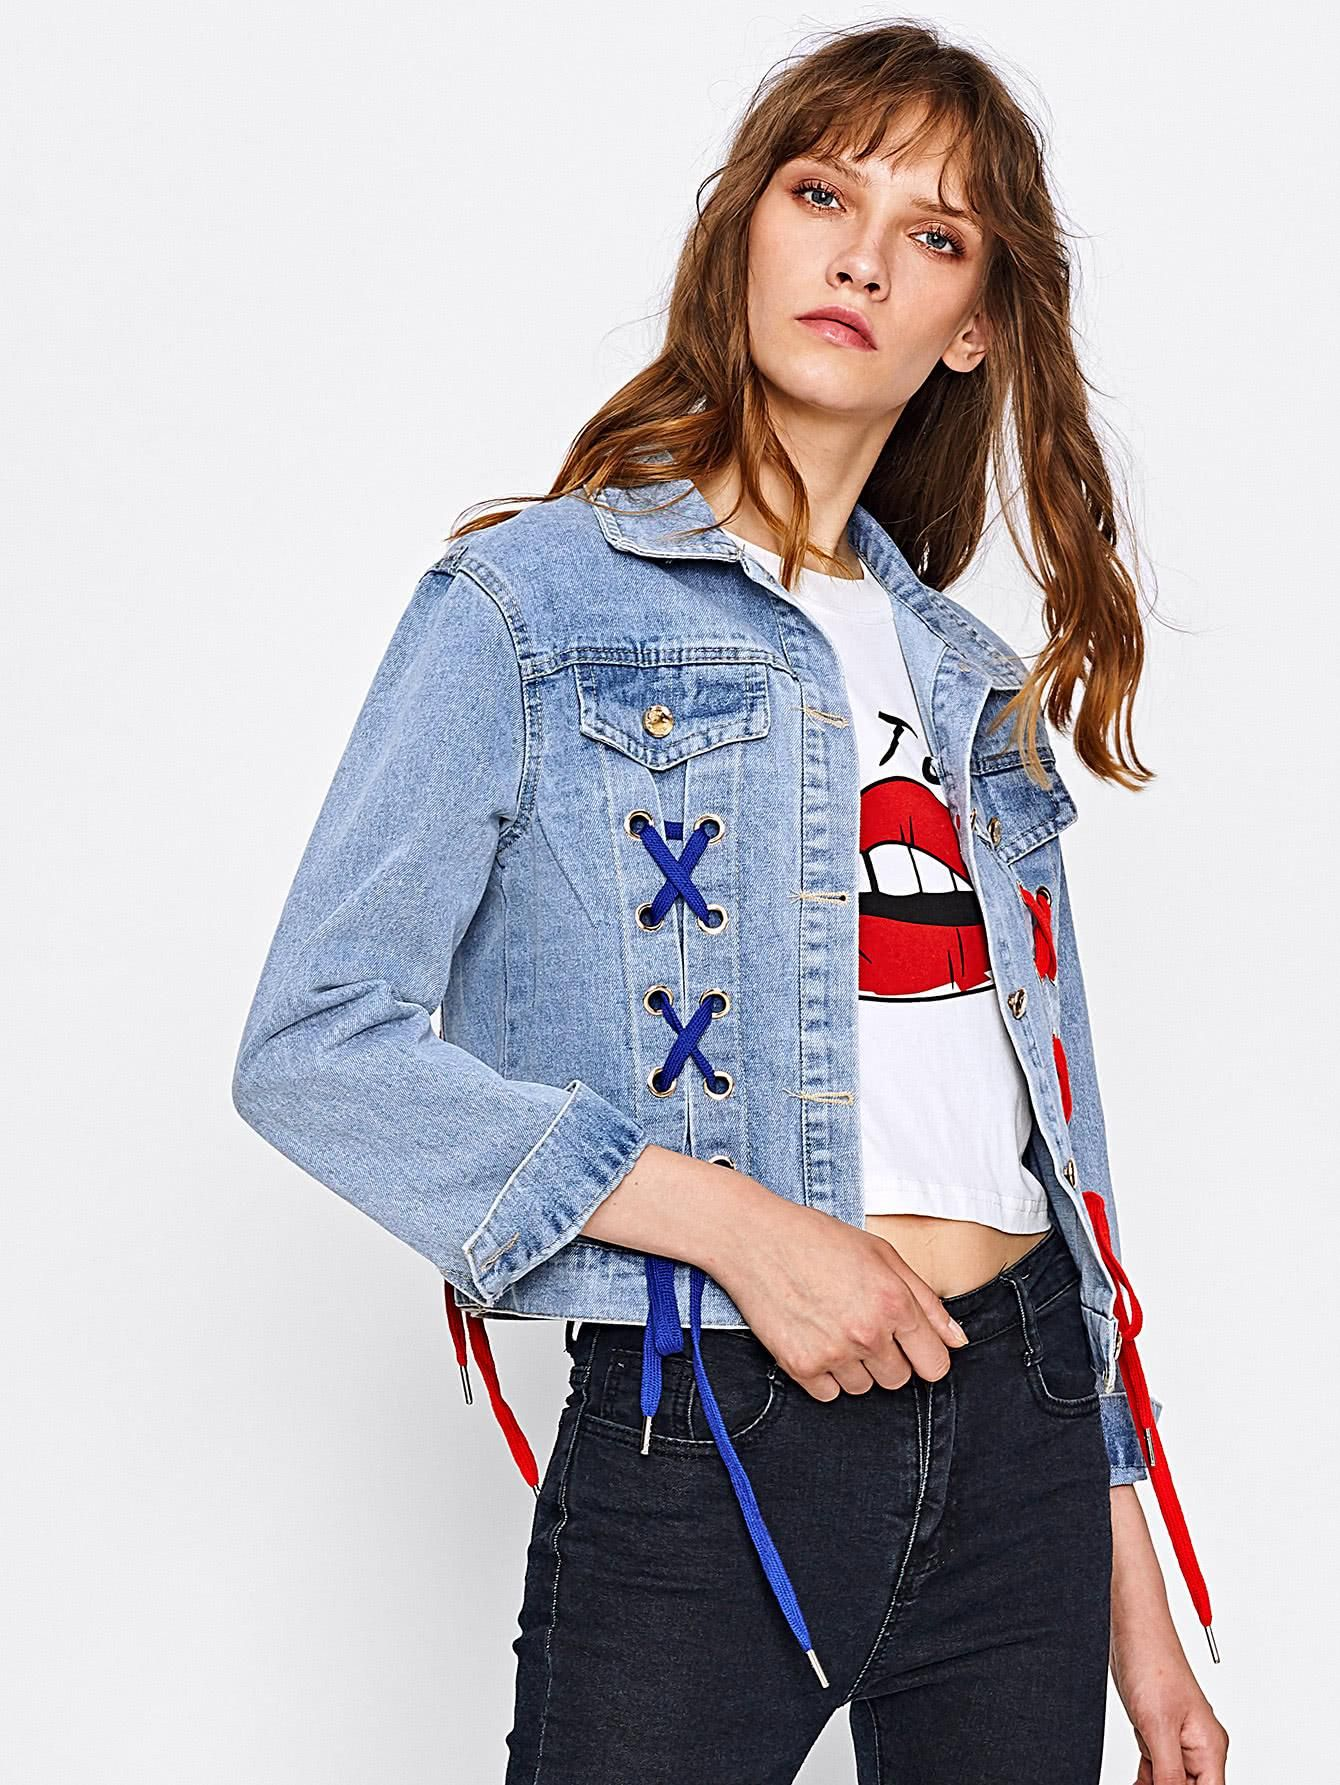 d34a8aa908 SheIn - SheIn Embroidered Patch Back Grommet Lace Up Denim Jacket -  AdoreWe.com